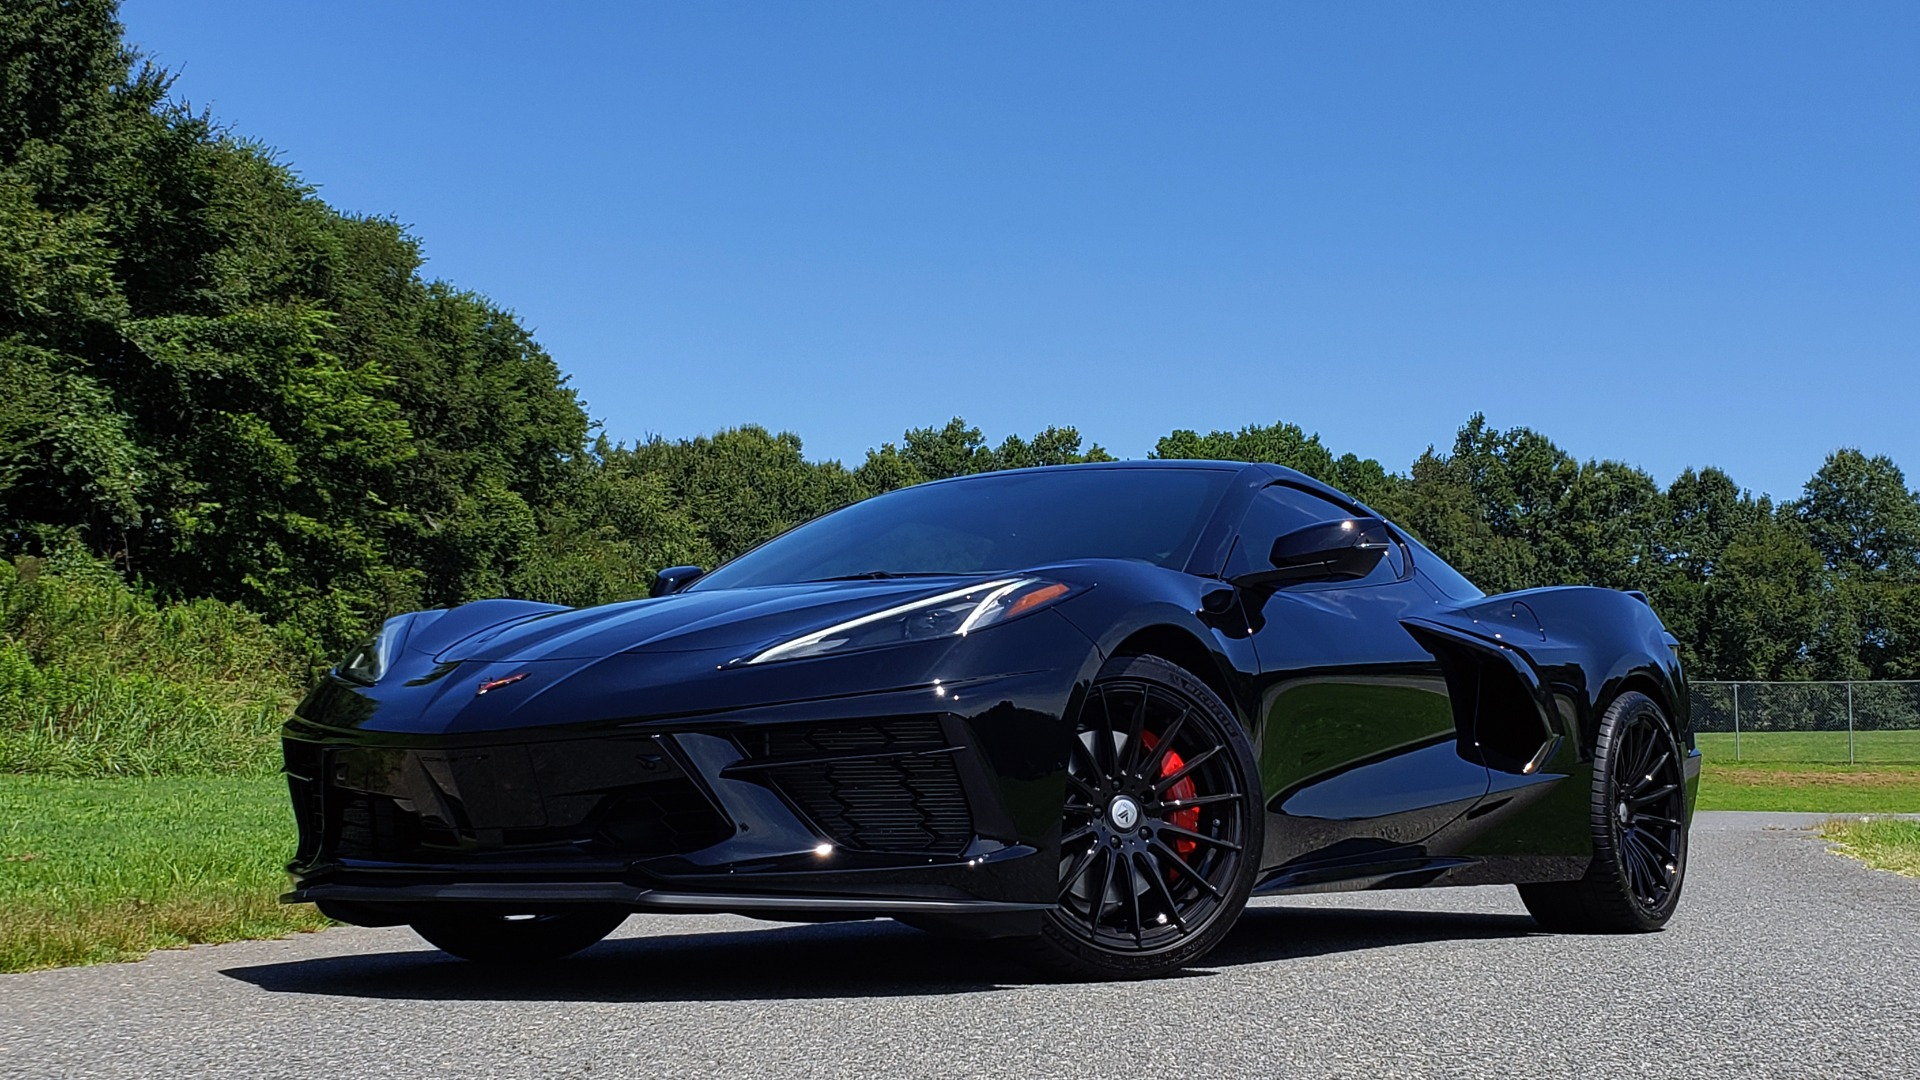 Used 2020 Chevrolet Corvette 2LT for sale Sold at Formula Imports in Charlotte NC 28227 1